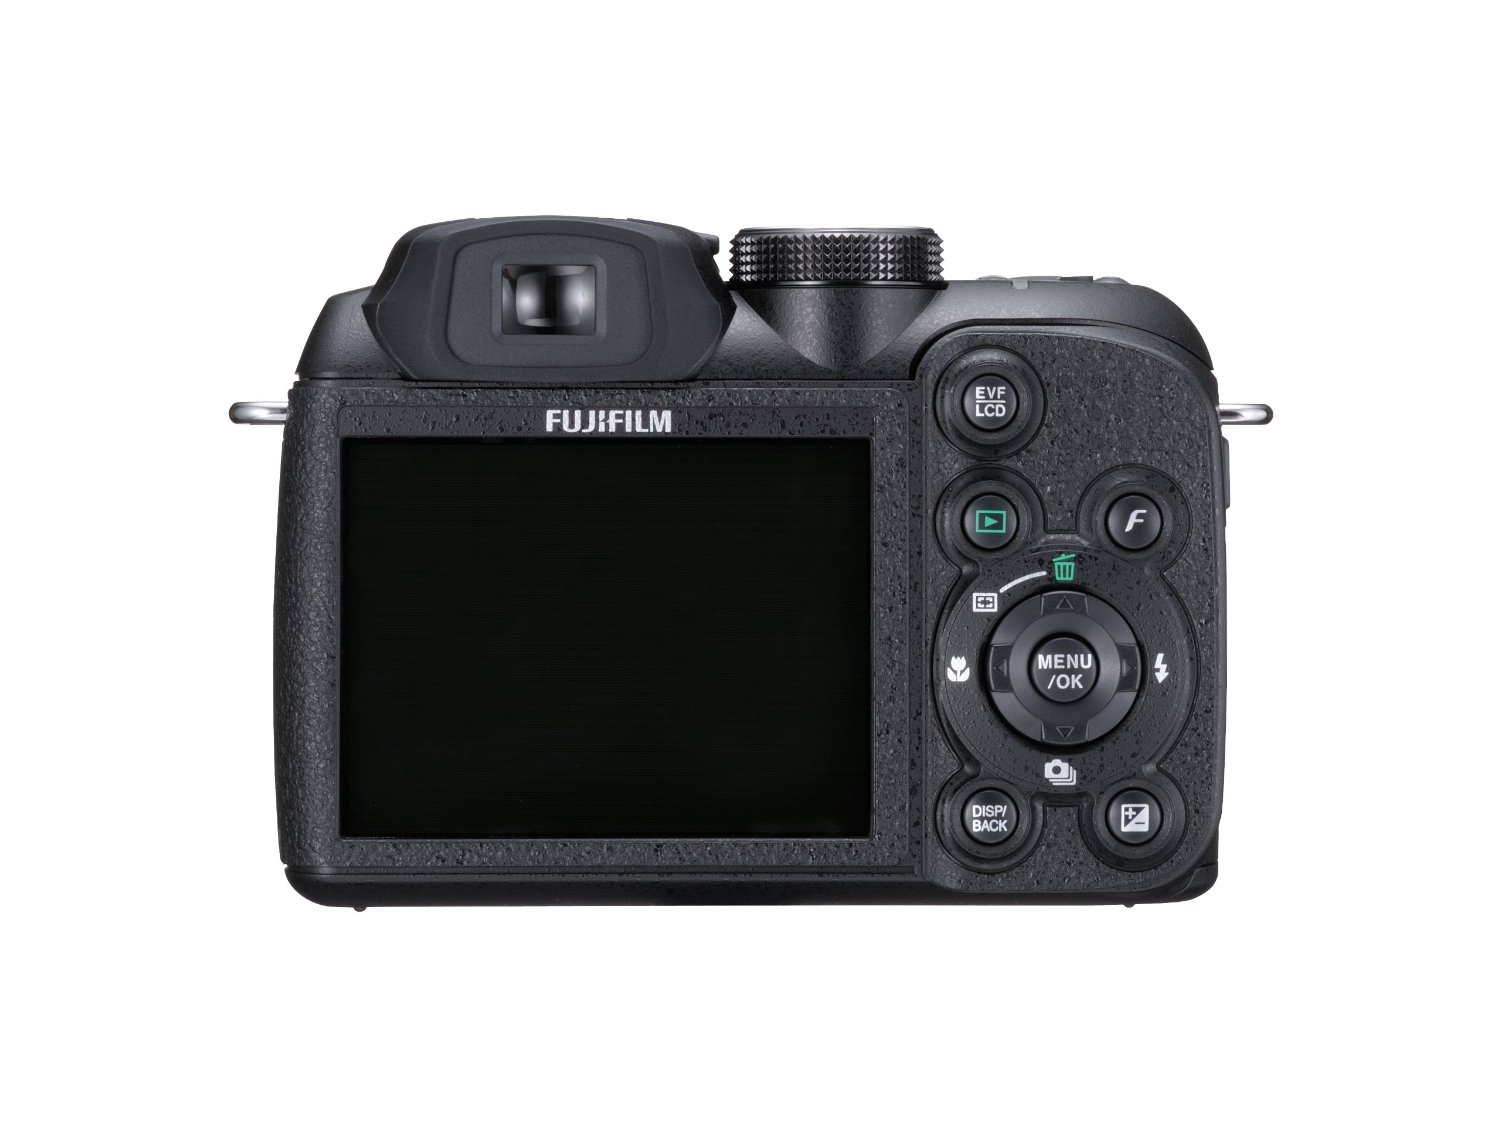 Fujifilm FinePix S1500 Digitalkamera 2